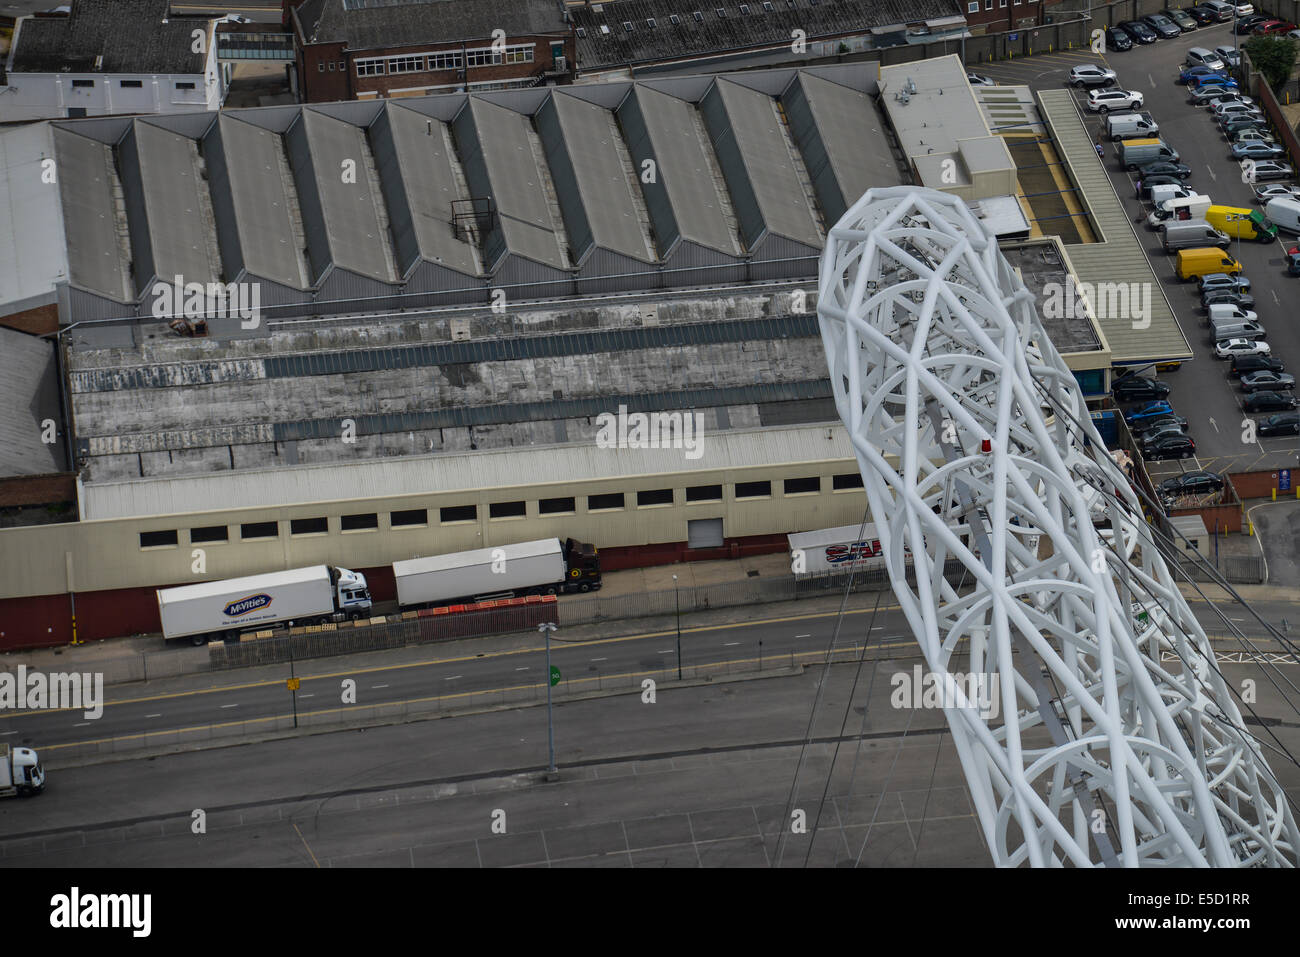 An aerial view looking down on the famous arch of Wembley football stadium, London, UK - Stock Image